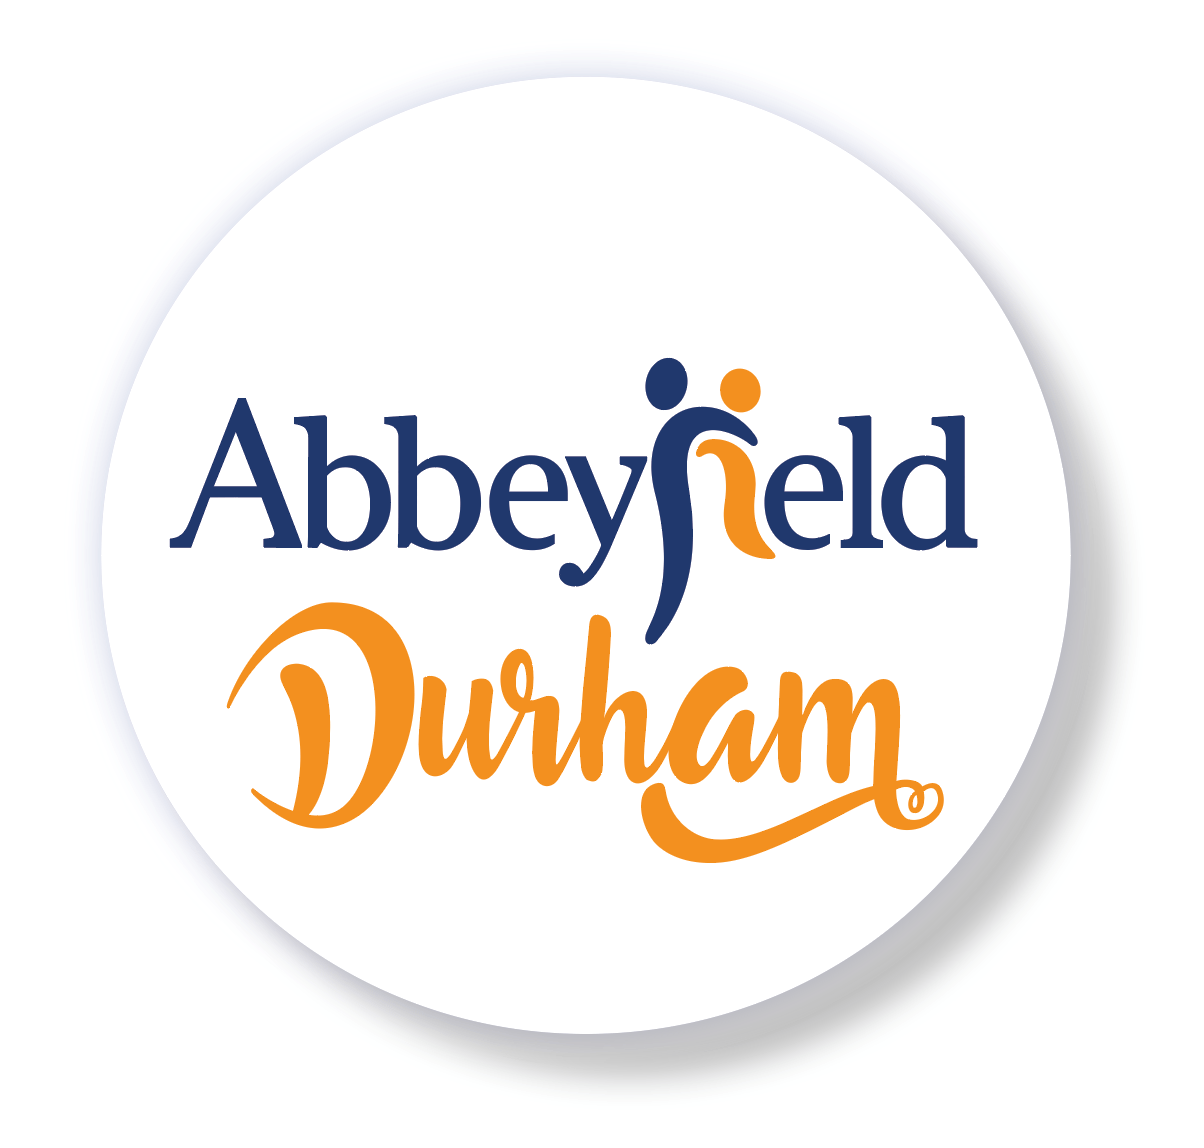 Abbeyfield Durham Logo